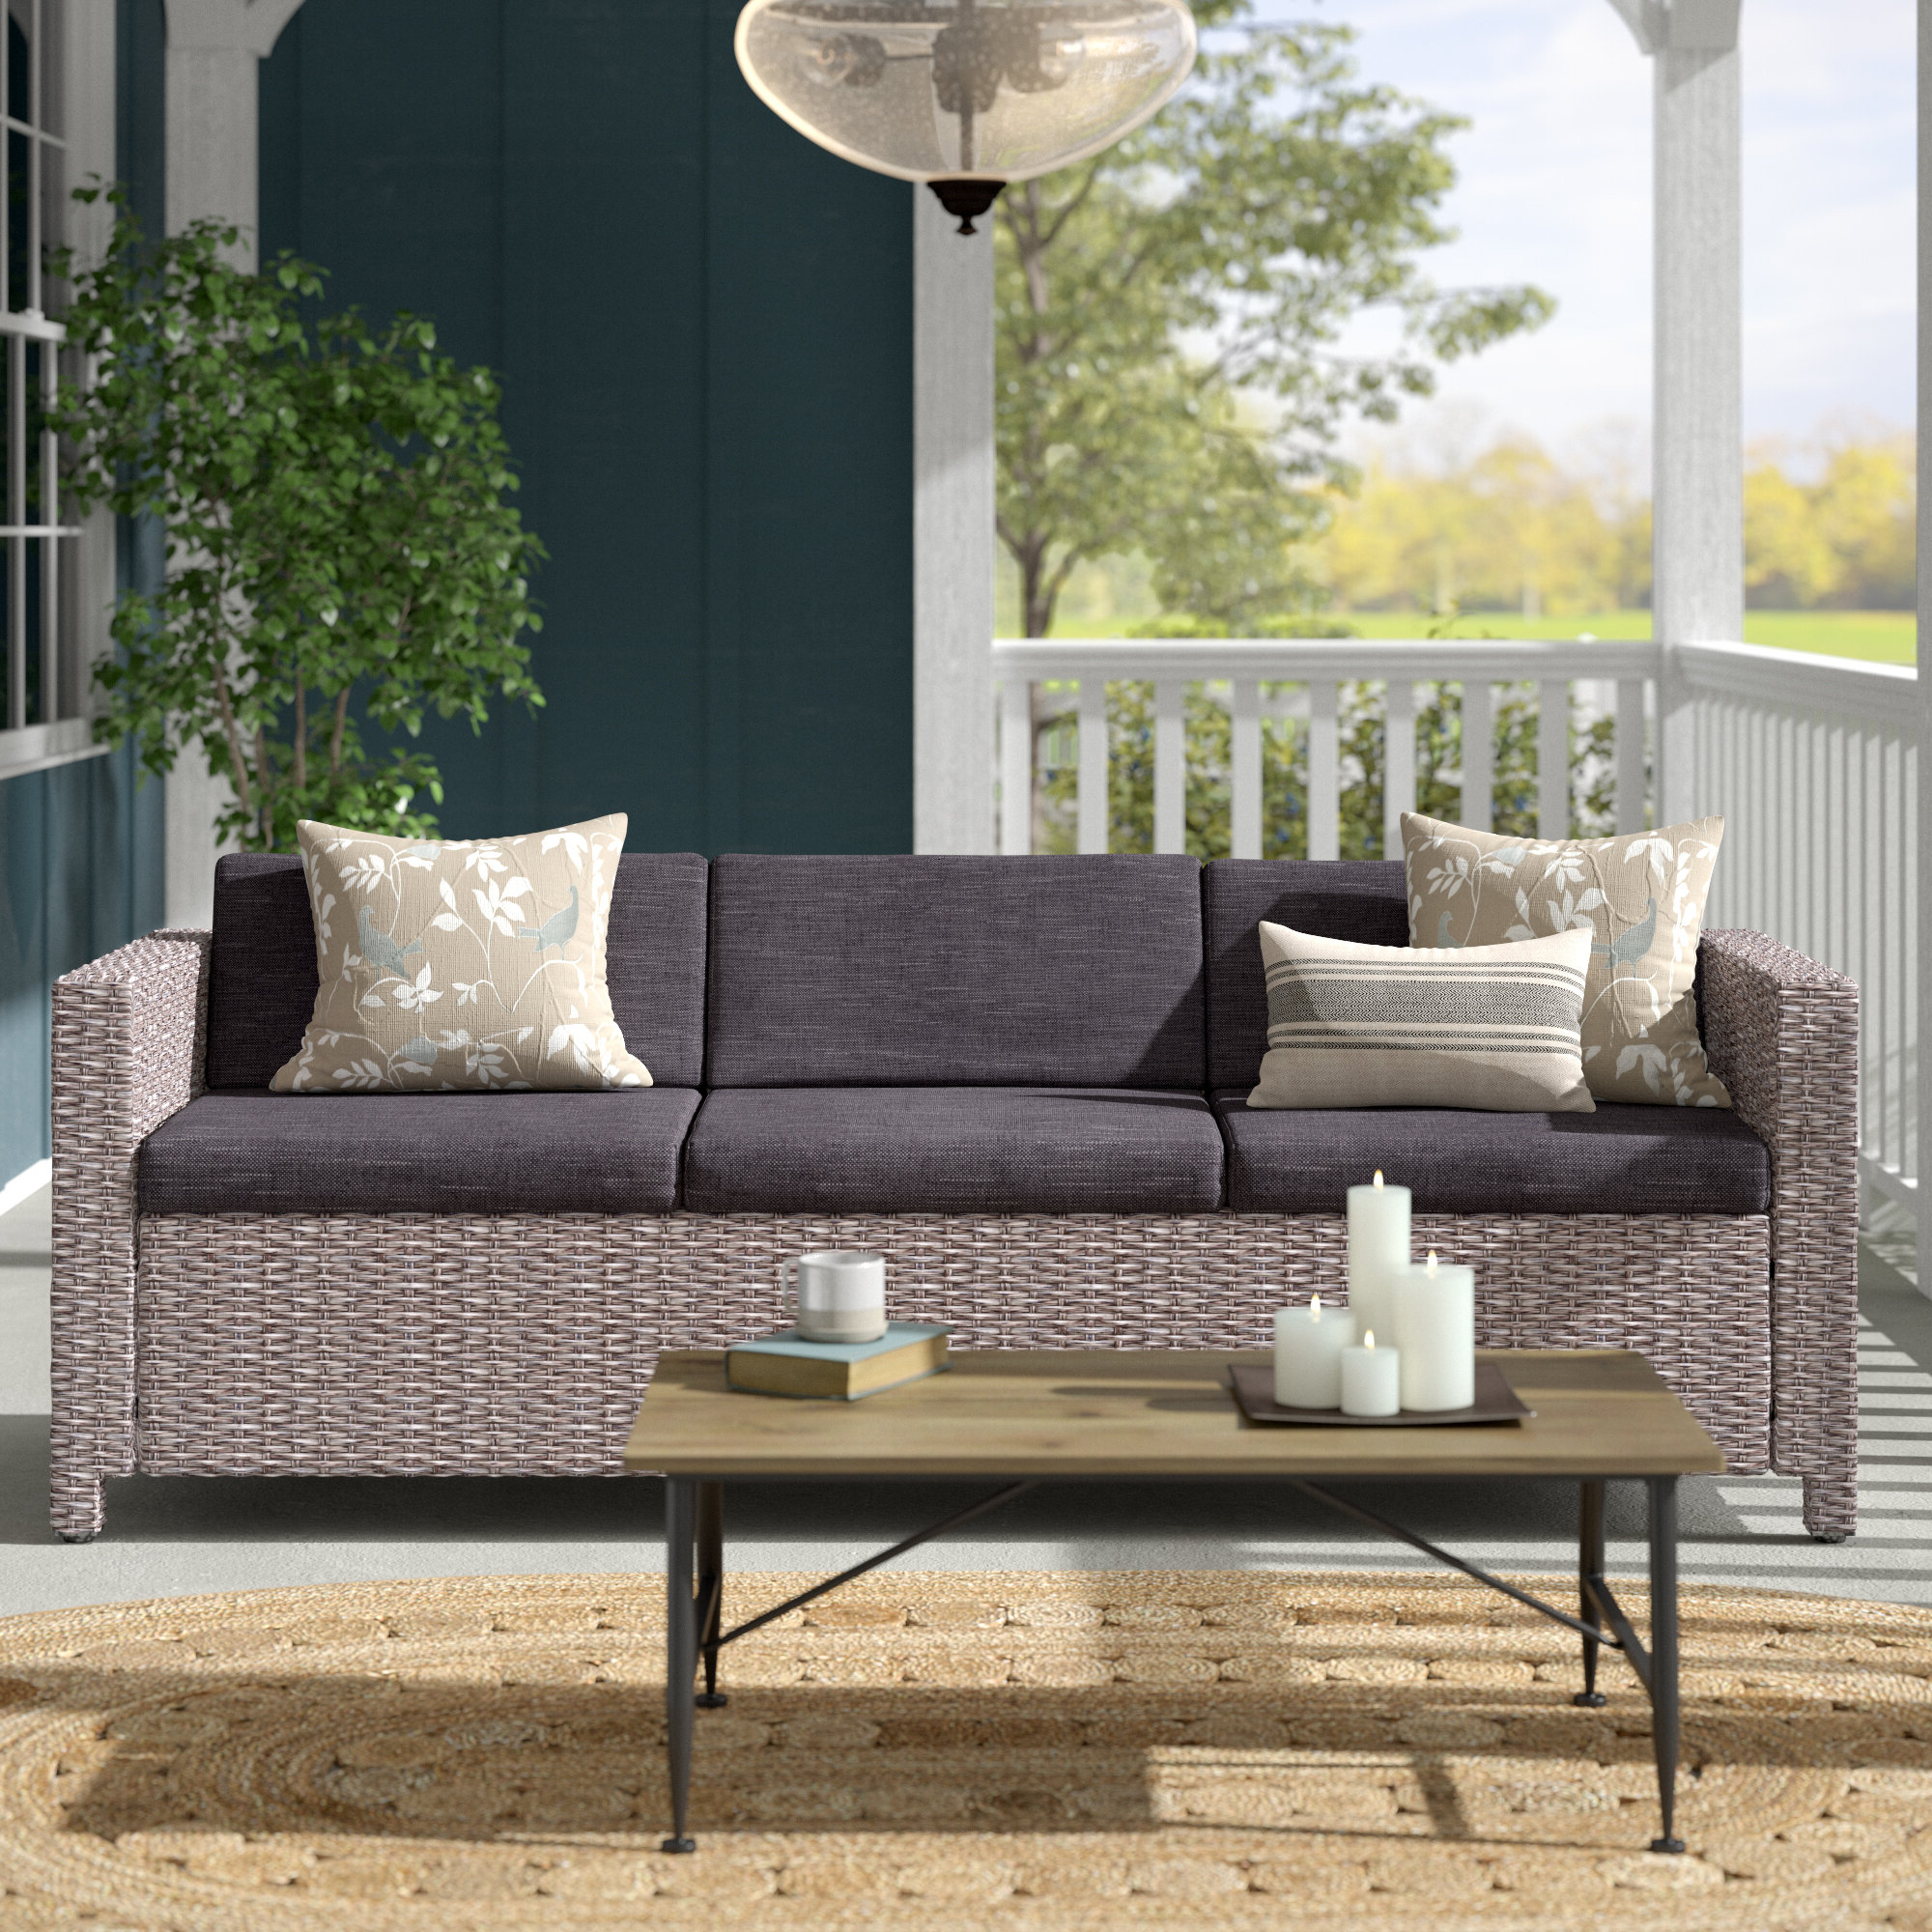 Furst Outdoor Patio Sofa With Cushions Intended For Most Current Silloth Patio Sofas With Cushions (View 6 of 20)